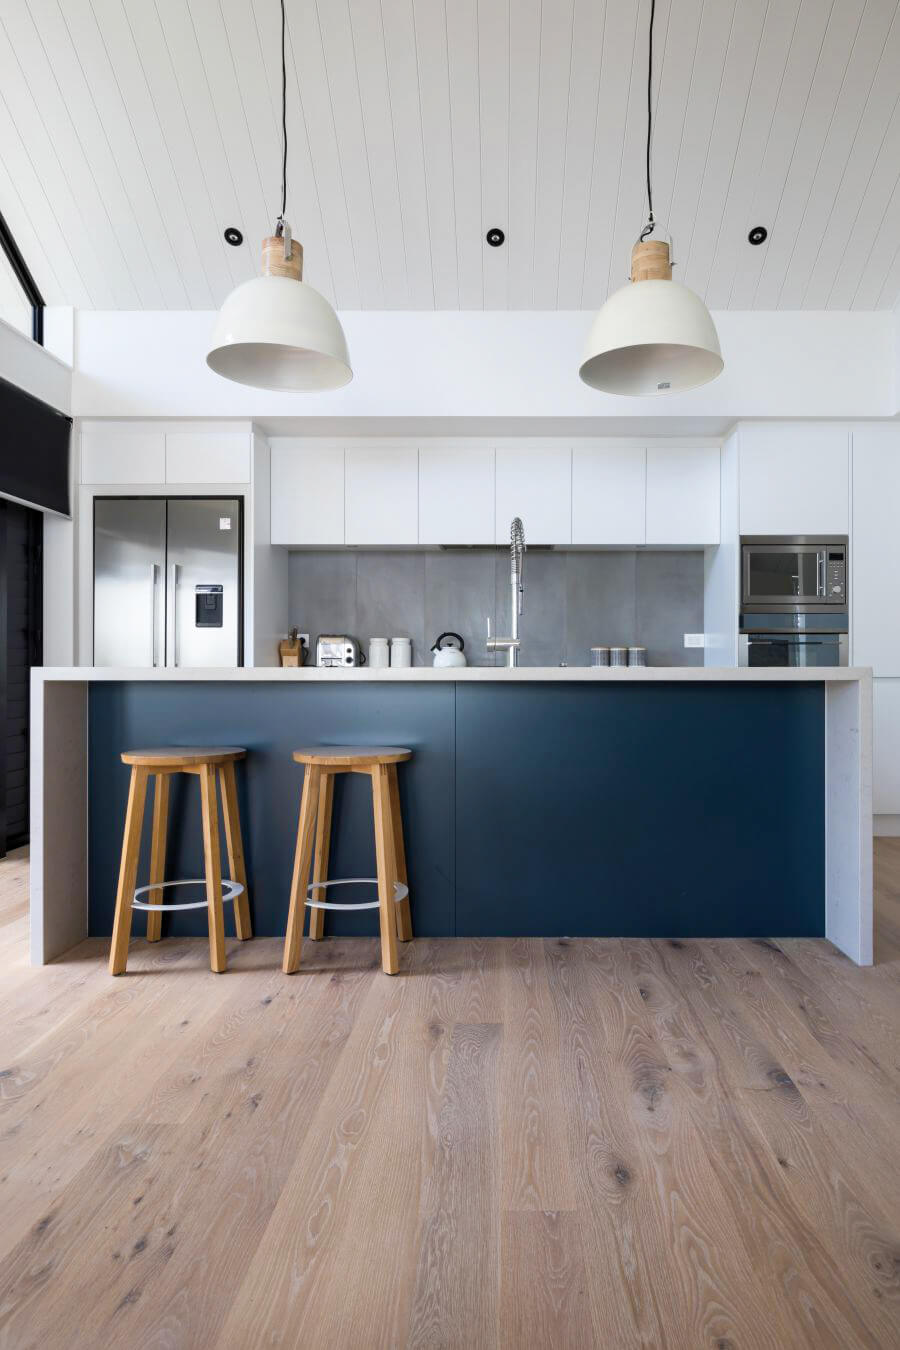 Kitchen with american oak plank floors.